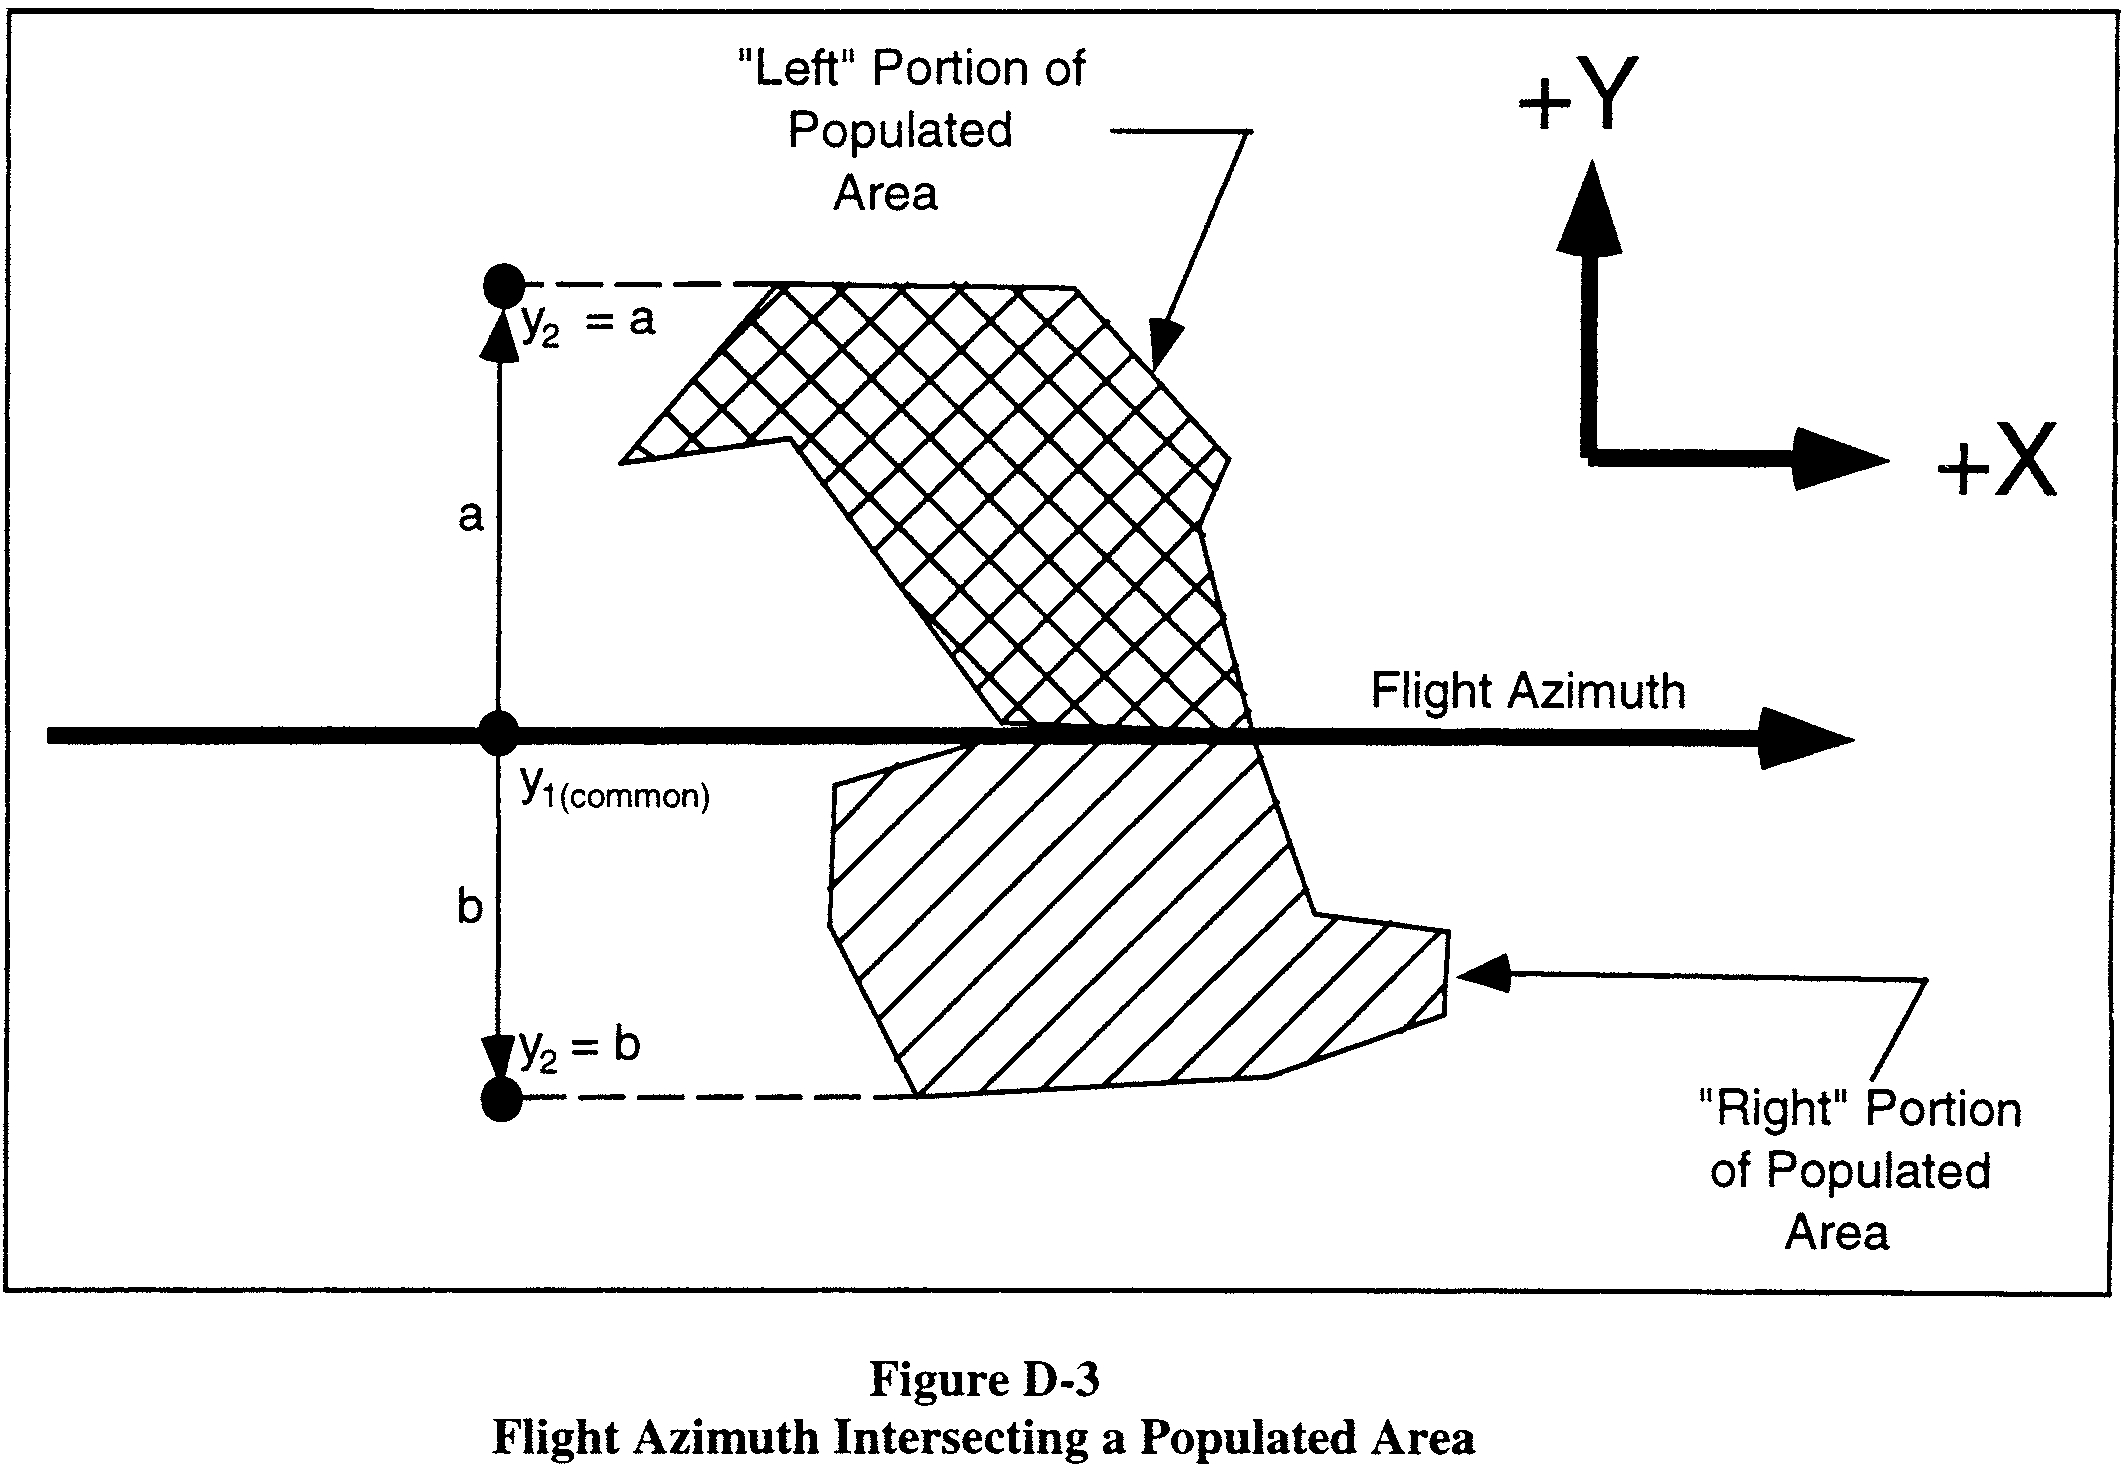 Graphic of (iv) If a populated area intersects the flight azimuth, an applicant shall solve equation D4 by obtaining the solution in two parts. An applicant shall determine, first, the probability between y1 = 0 and y2 = a and, second, the probability between y1 = 0 and y2 = b, as depicted in figure D-3. The probability Py is then equal to the sum of the probabilities of the two parts. If a populated area intersects the line that is normal to the flight azimuth on the impact point, an applicant shall solve equation D3 by obtaining the solution in two parts in the same manner as with the values of x.